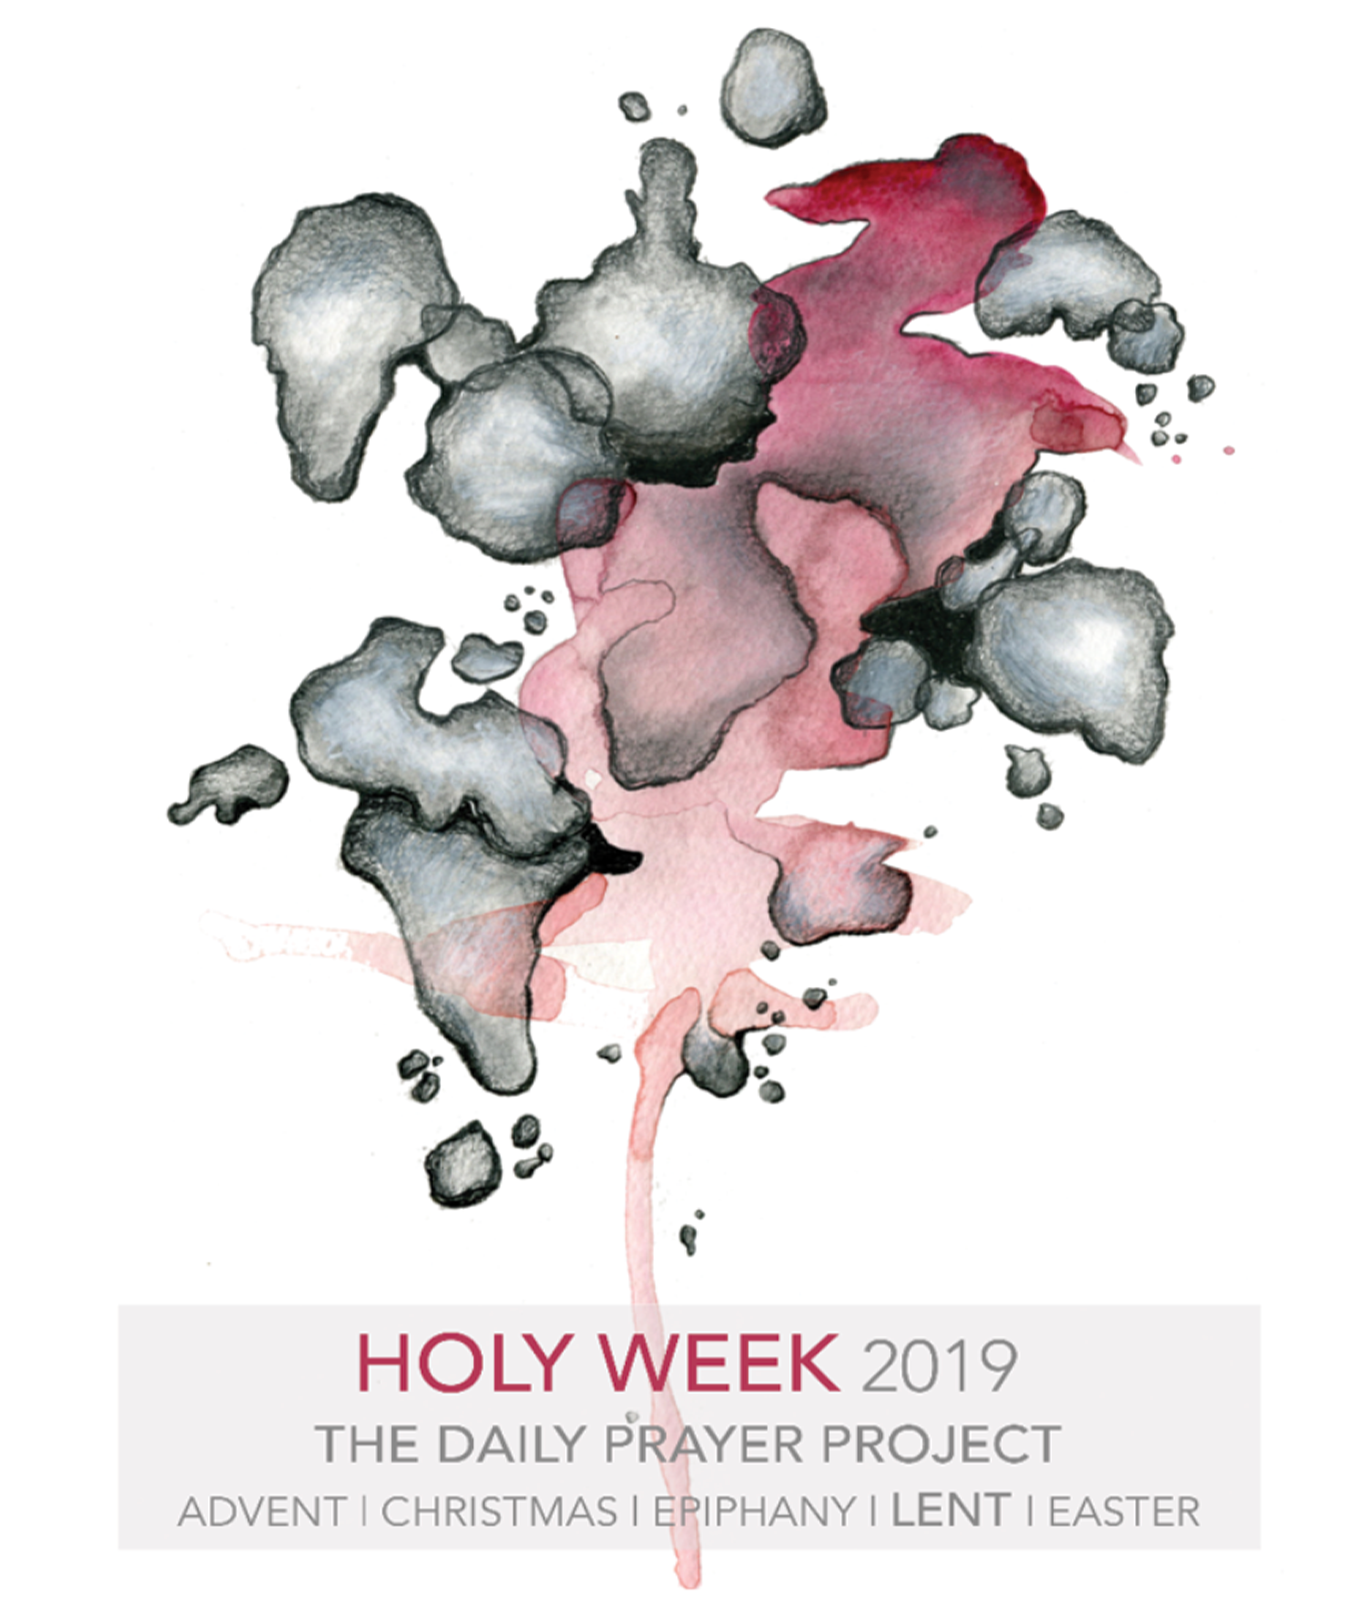 holyweekcover.png